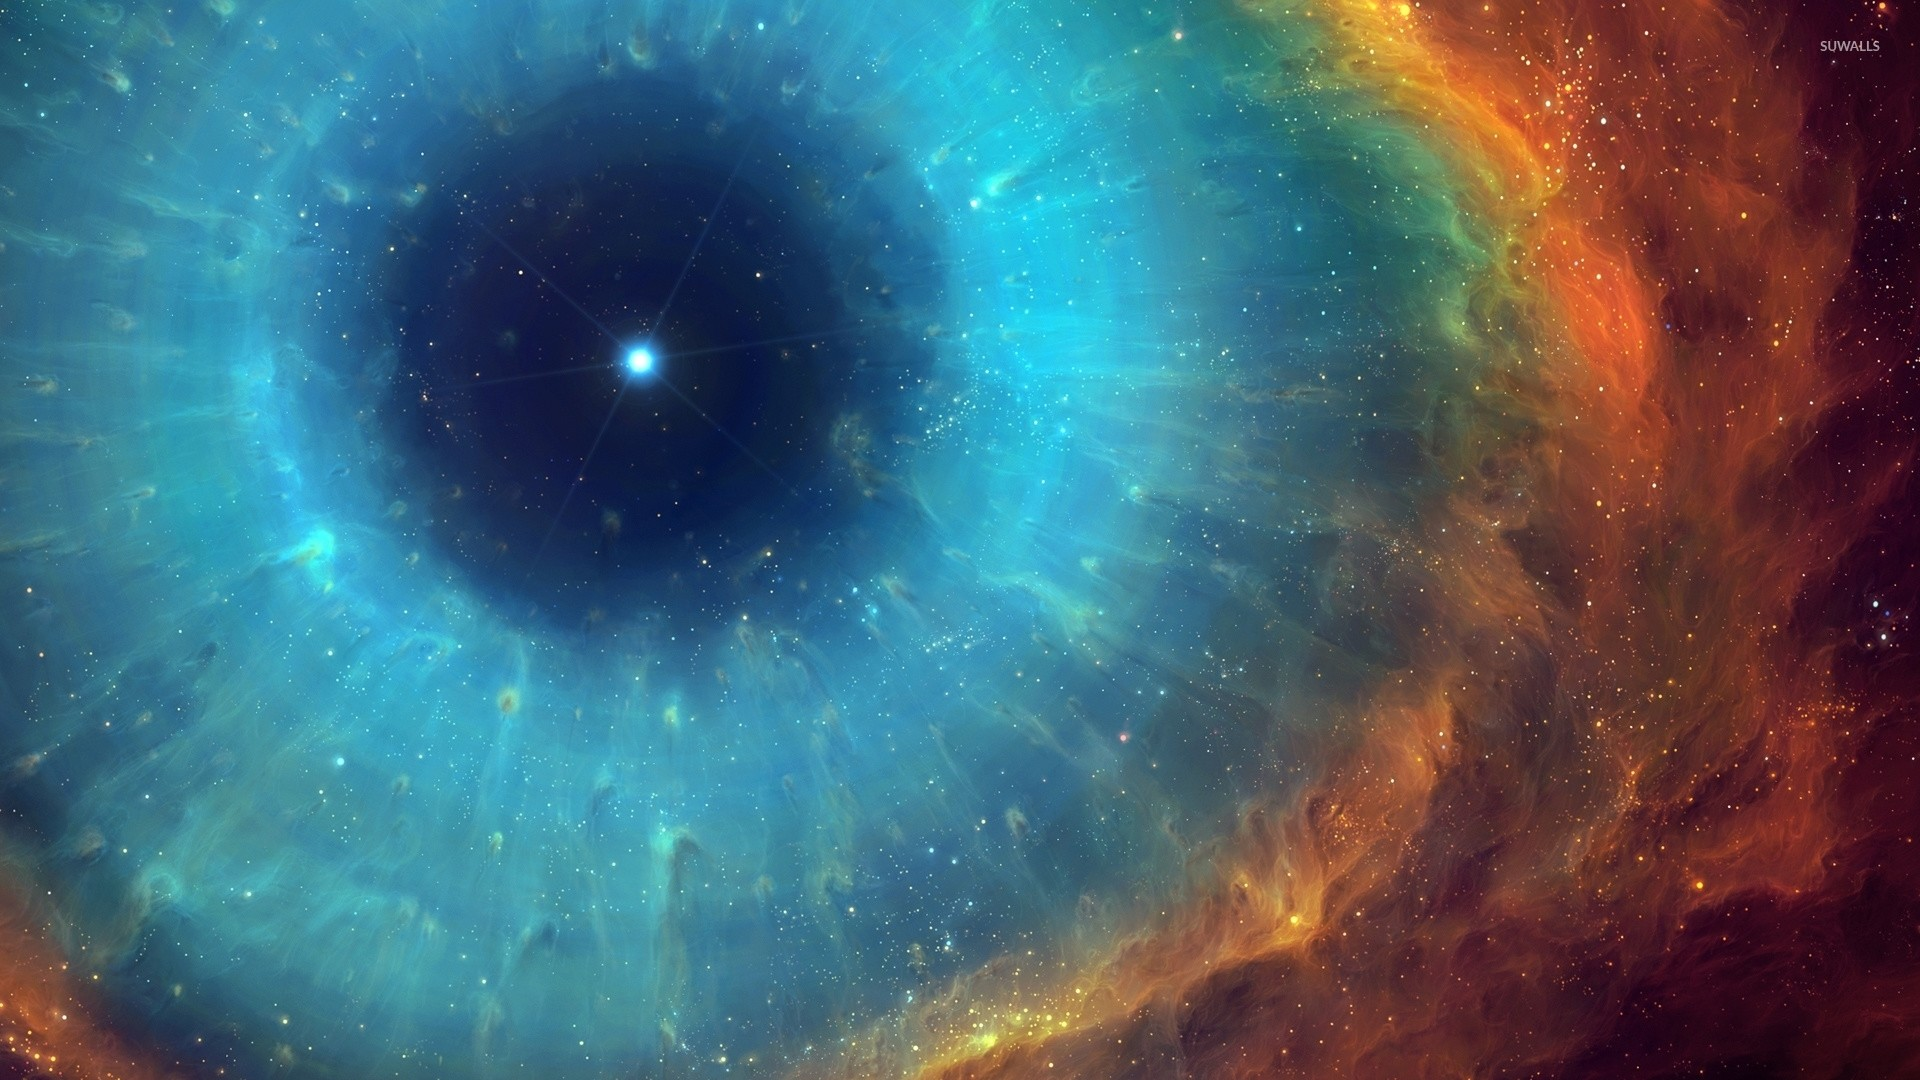 eye of god nebula wallpaper (59+ images)